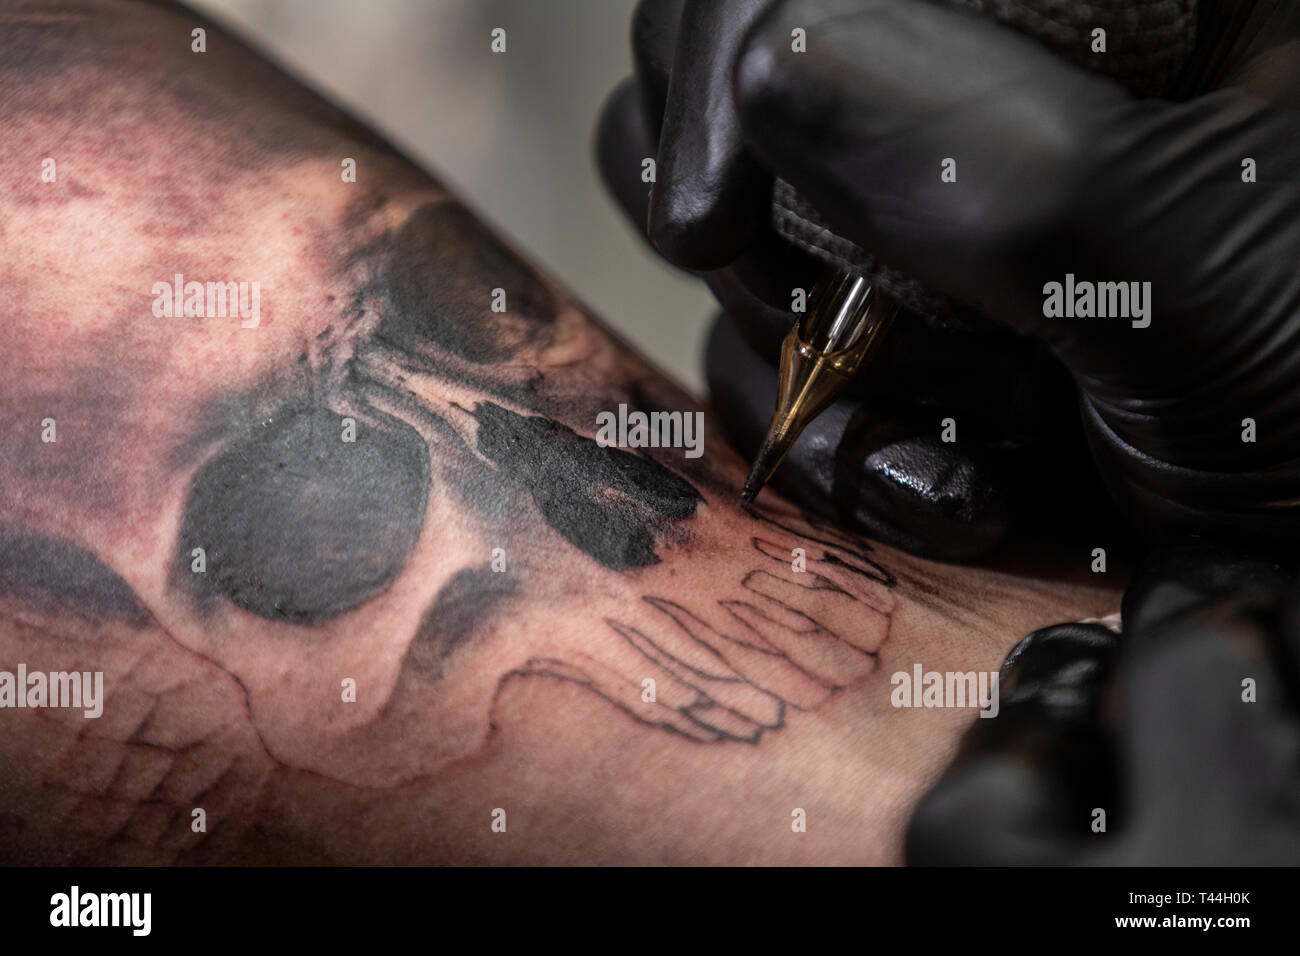 Skull Tattoo Design Stock Photos & Skull Tattoo Design Stock